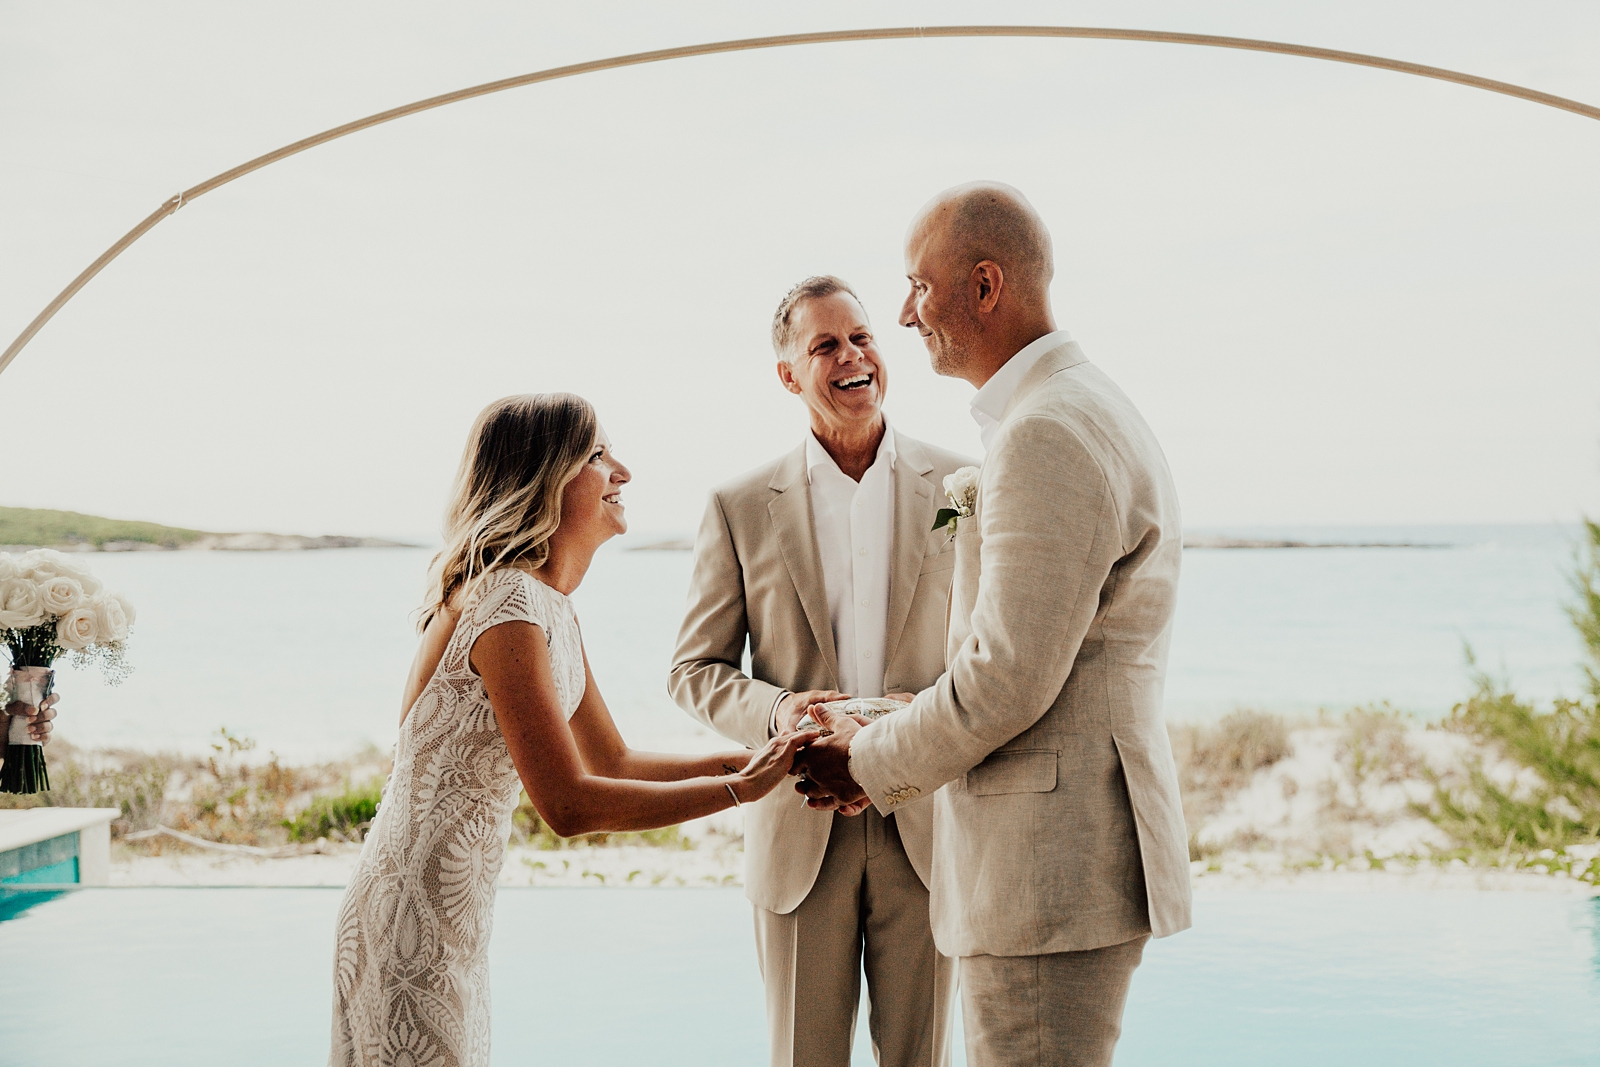 Jenni & Andrew Intimate Beach Destination Wedding in Little Exuma, Bahamas_0510.jpg